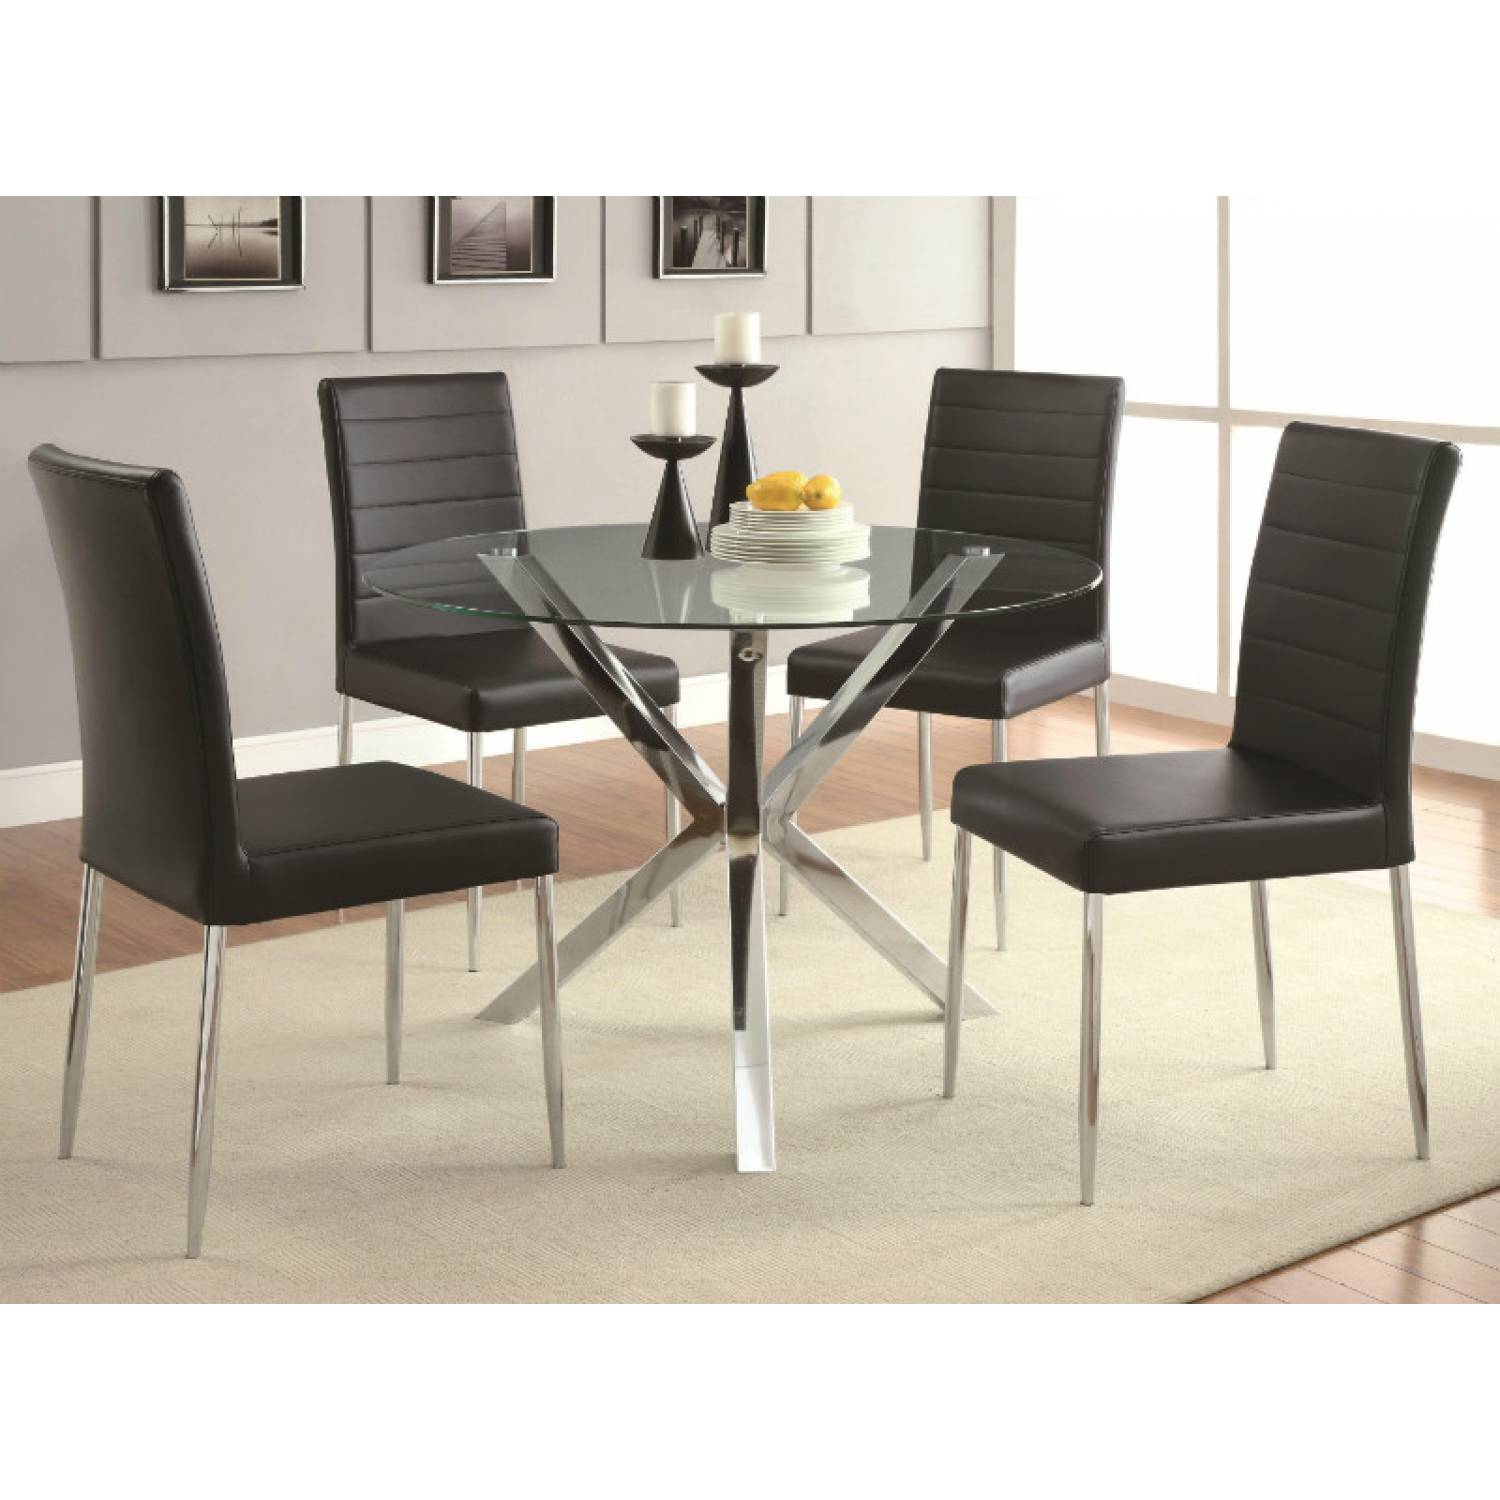 Vance Contemporary 5-Piece Glass Top Table And Chair Set